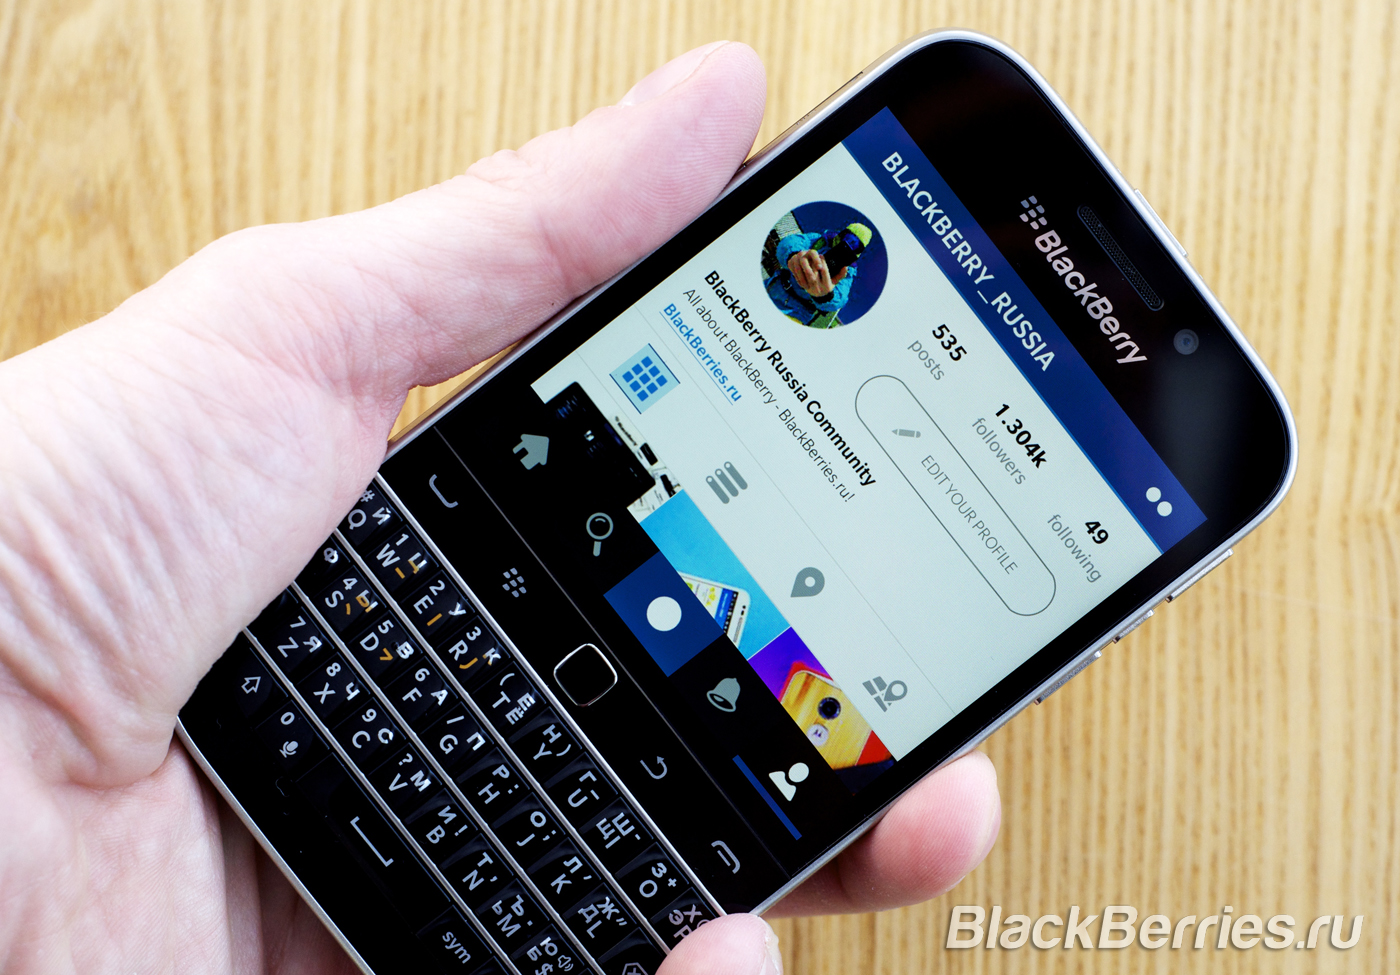 BlackBerry-Instagram-Inst10-5